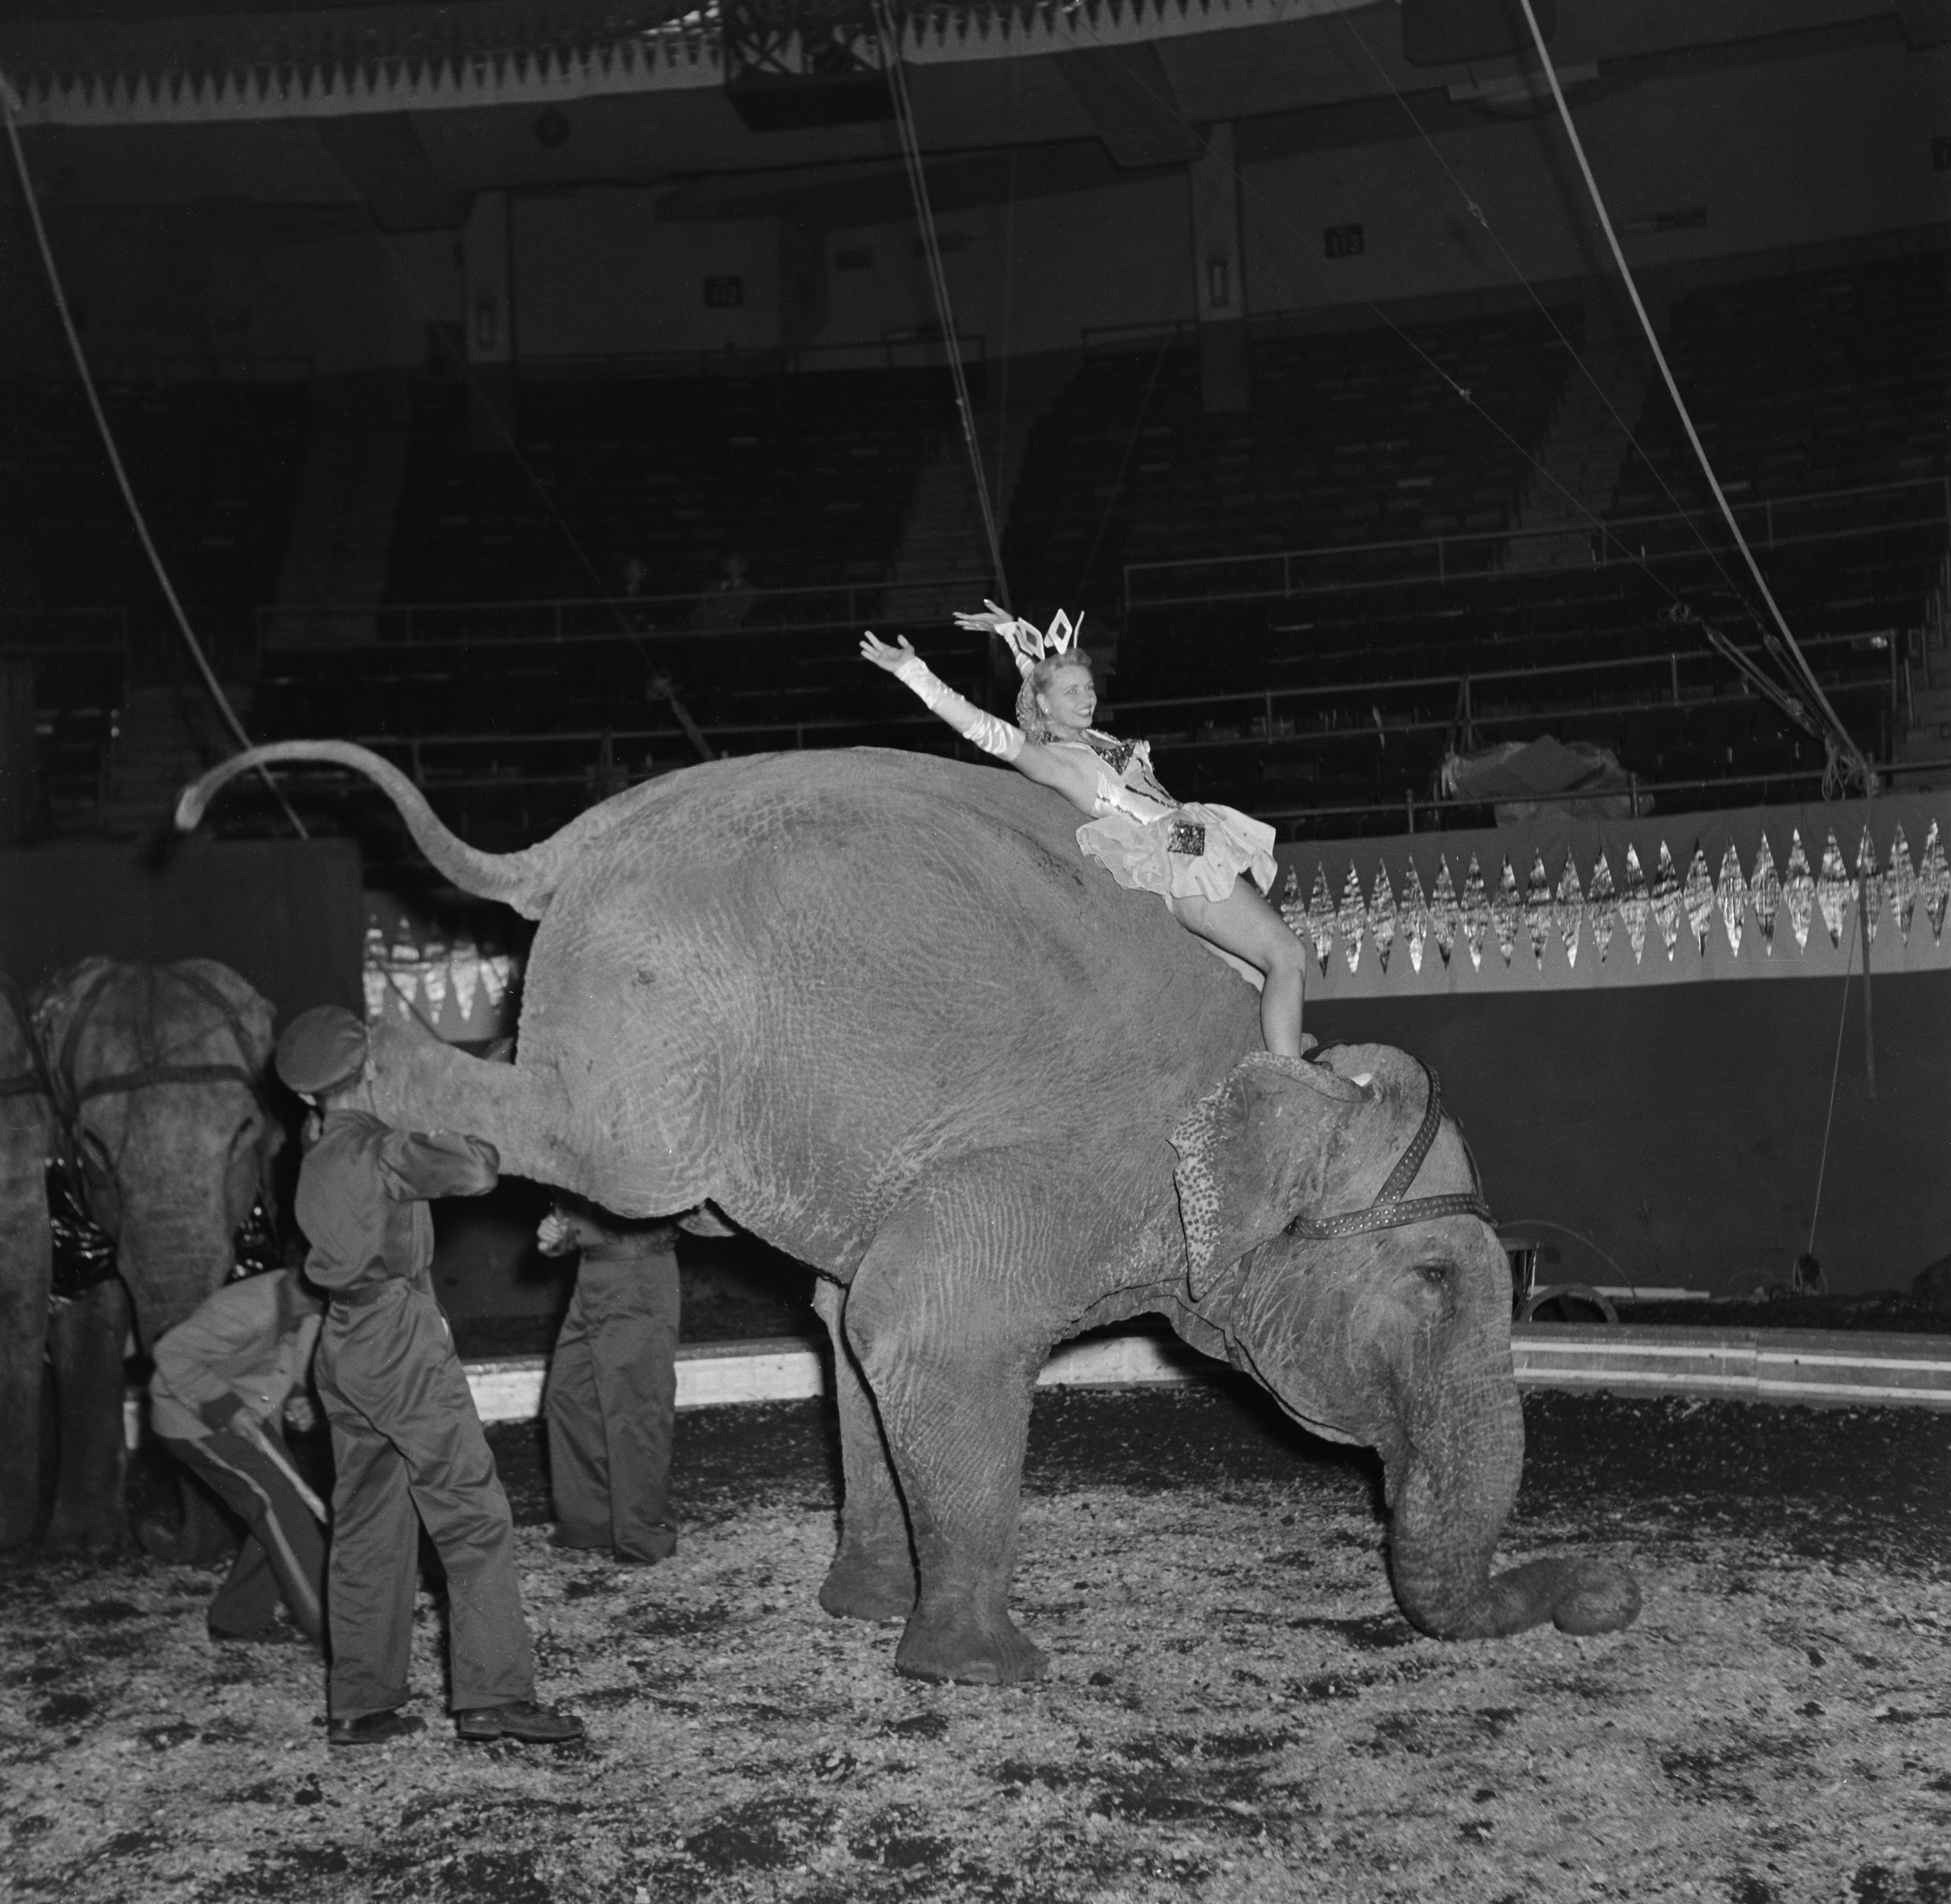 A performer rides an elephant to entertain the audience during Ringling Bros. and Barnum & Bailey Circus in New York on Apr. 7, 1948.